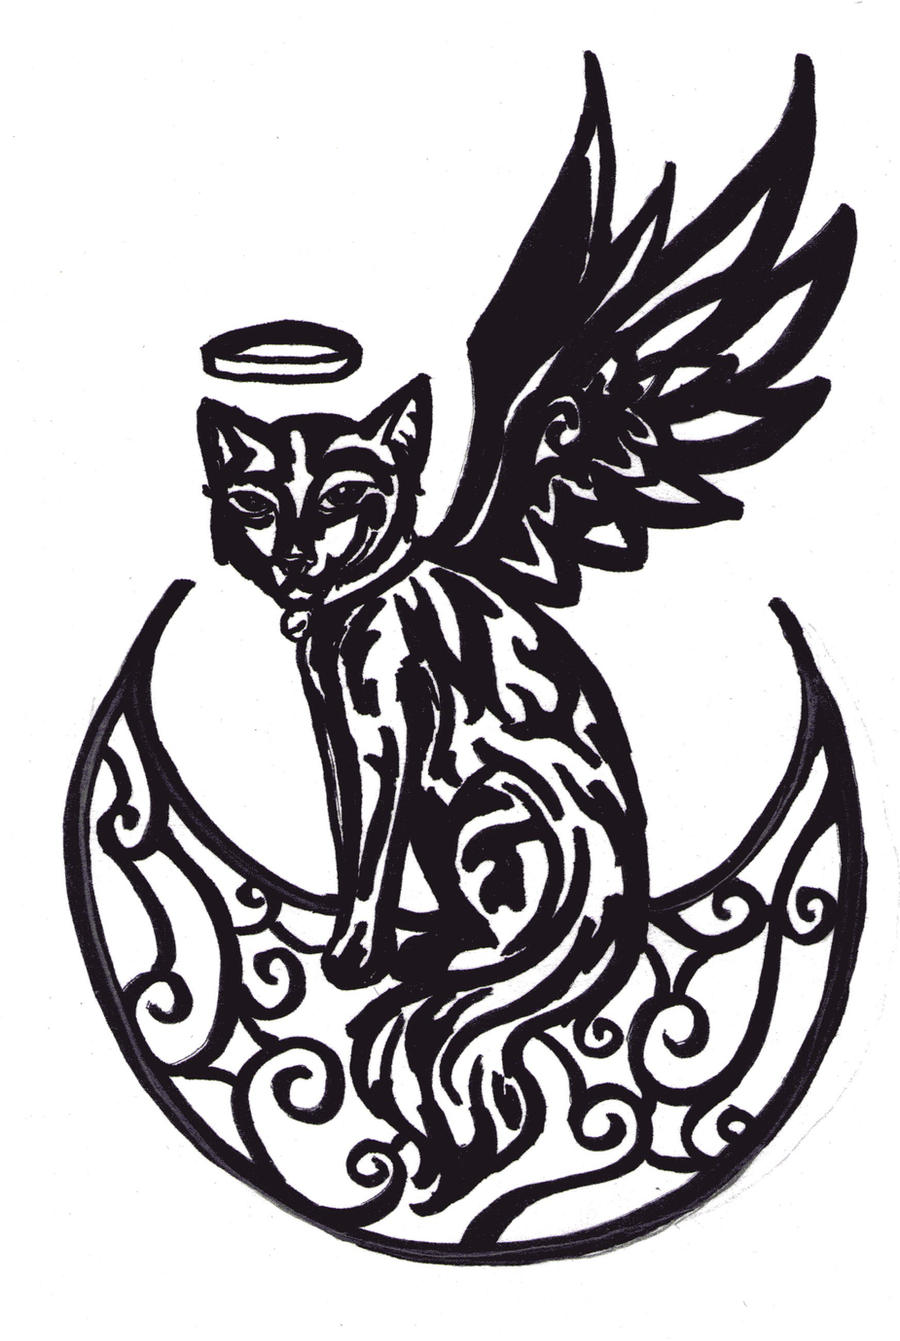 Luna tribal tattoo design 2 by animal and anime lvr on for Tribal tattoo shops near me